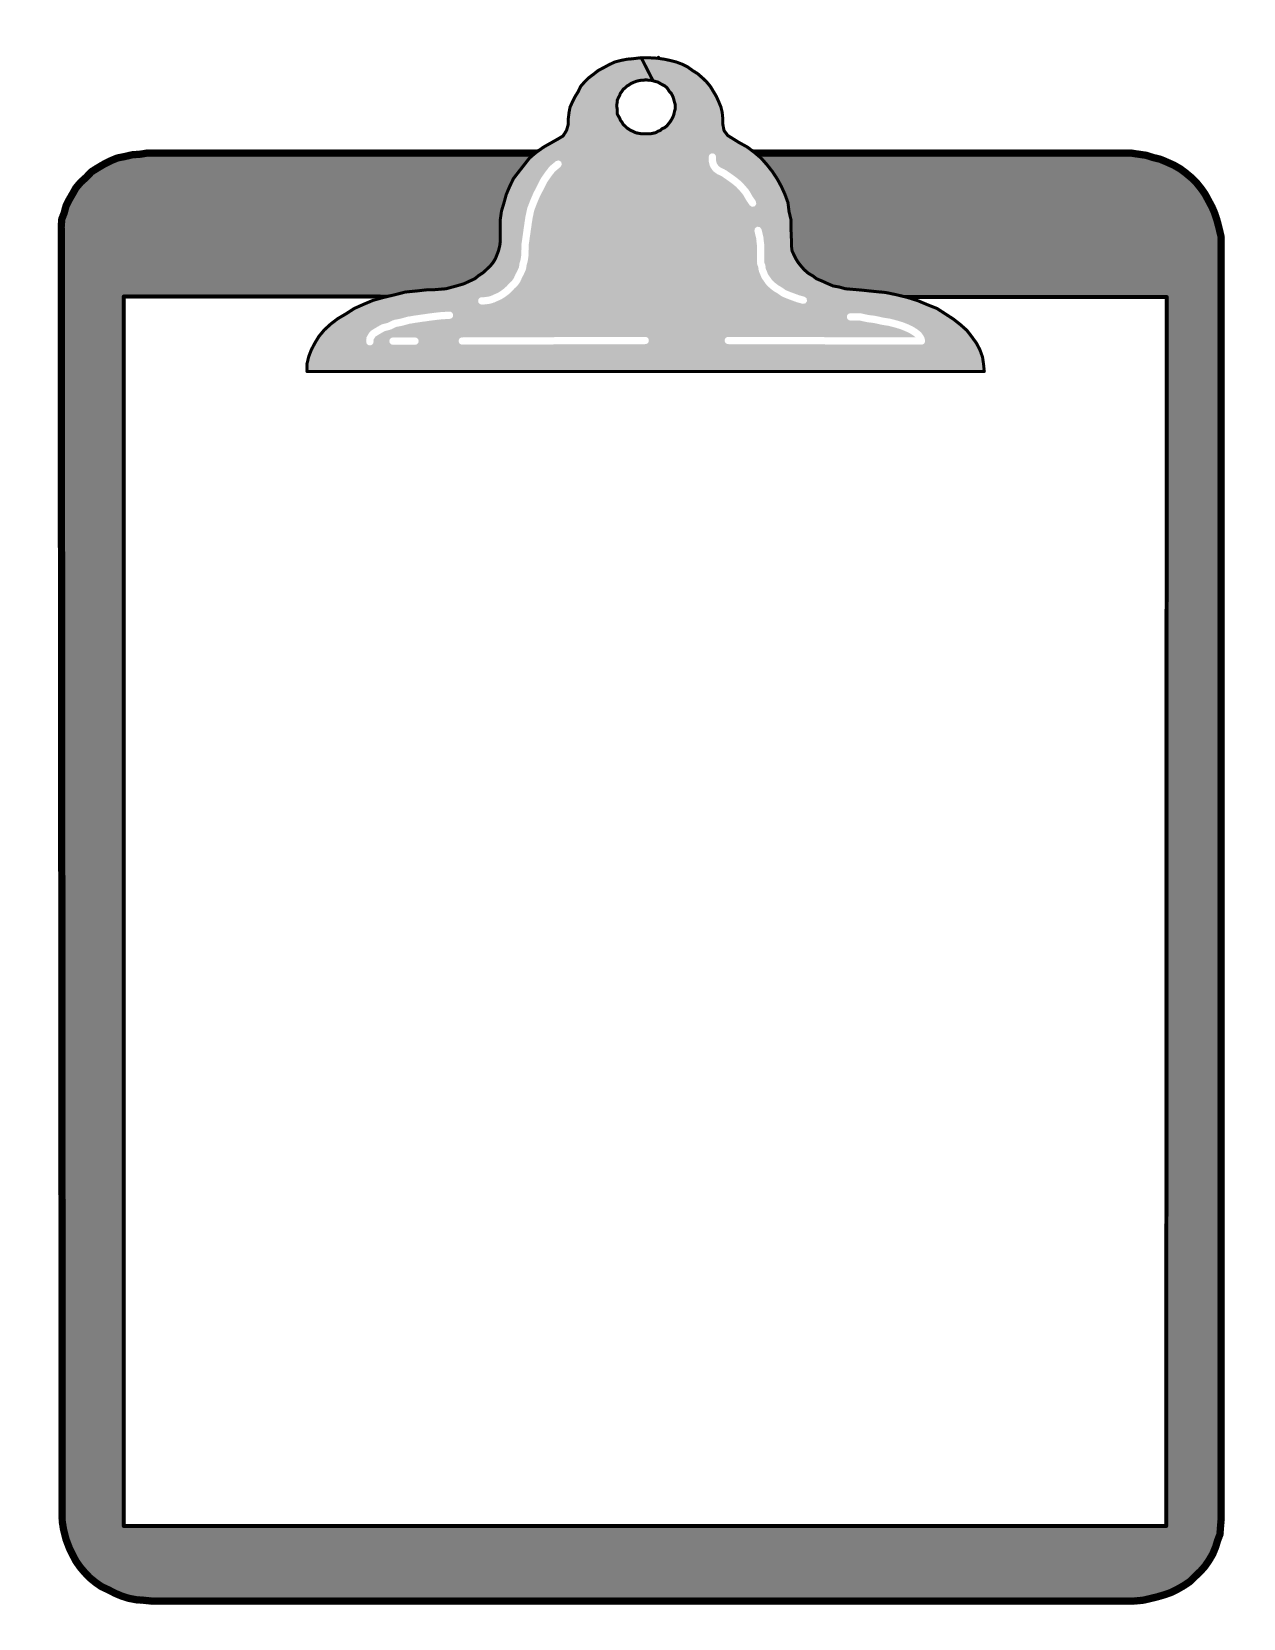 Clipboard Clip Art Green free image.